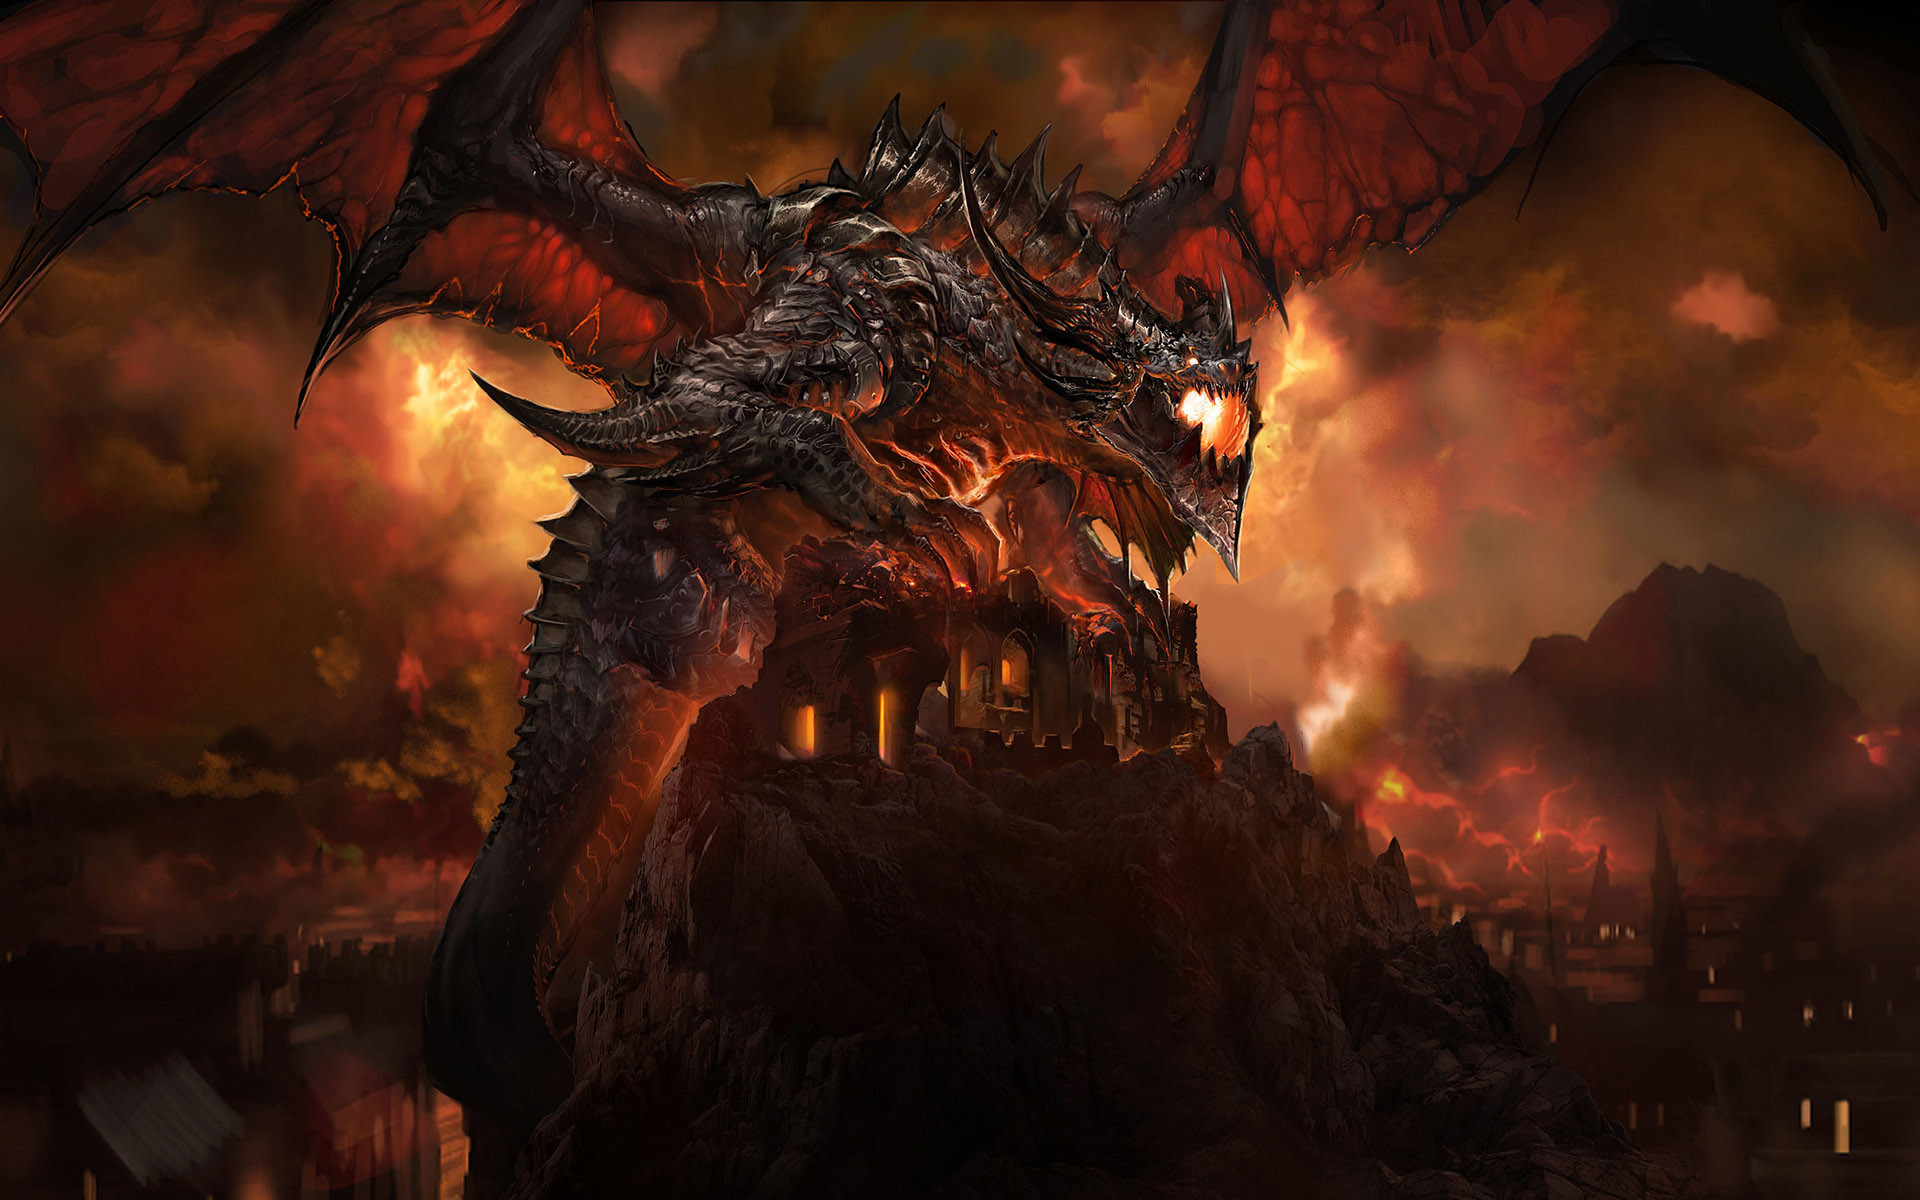 Epic dragon wallpaper wallpapertag - Dragon backgrounds 1920x1080 ...